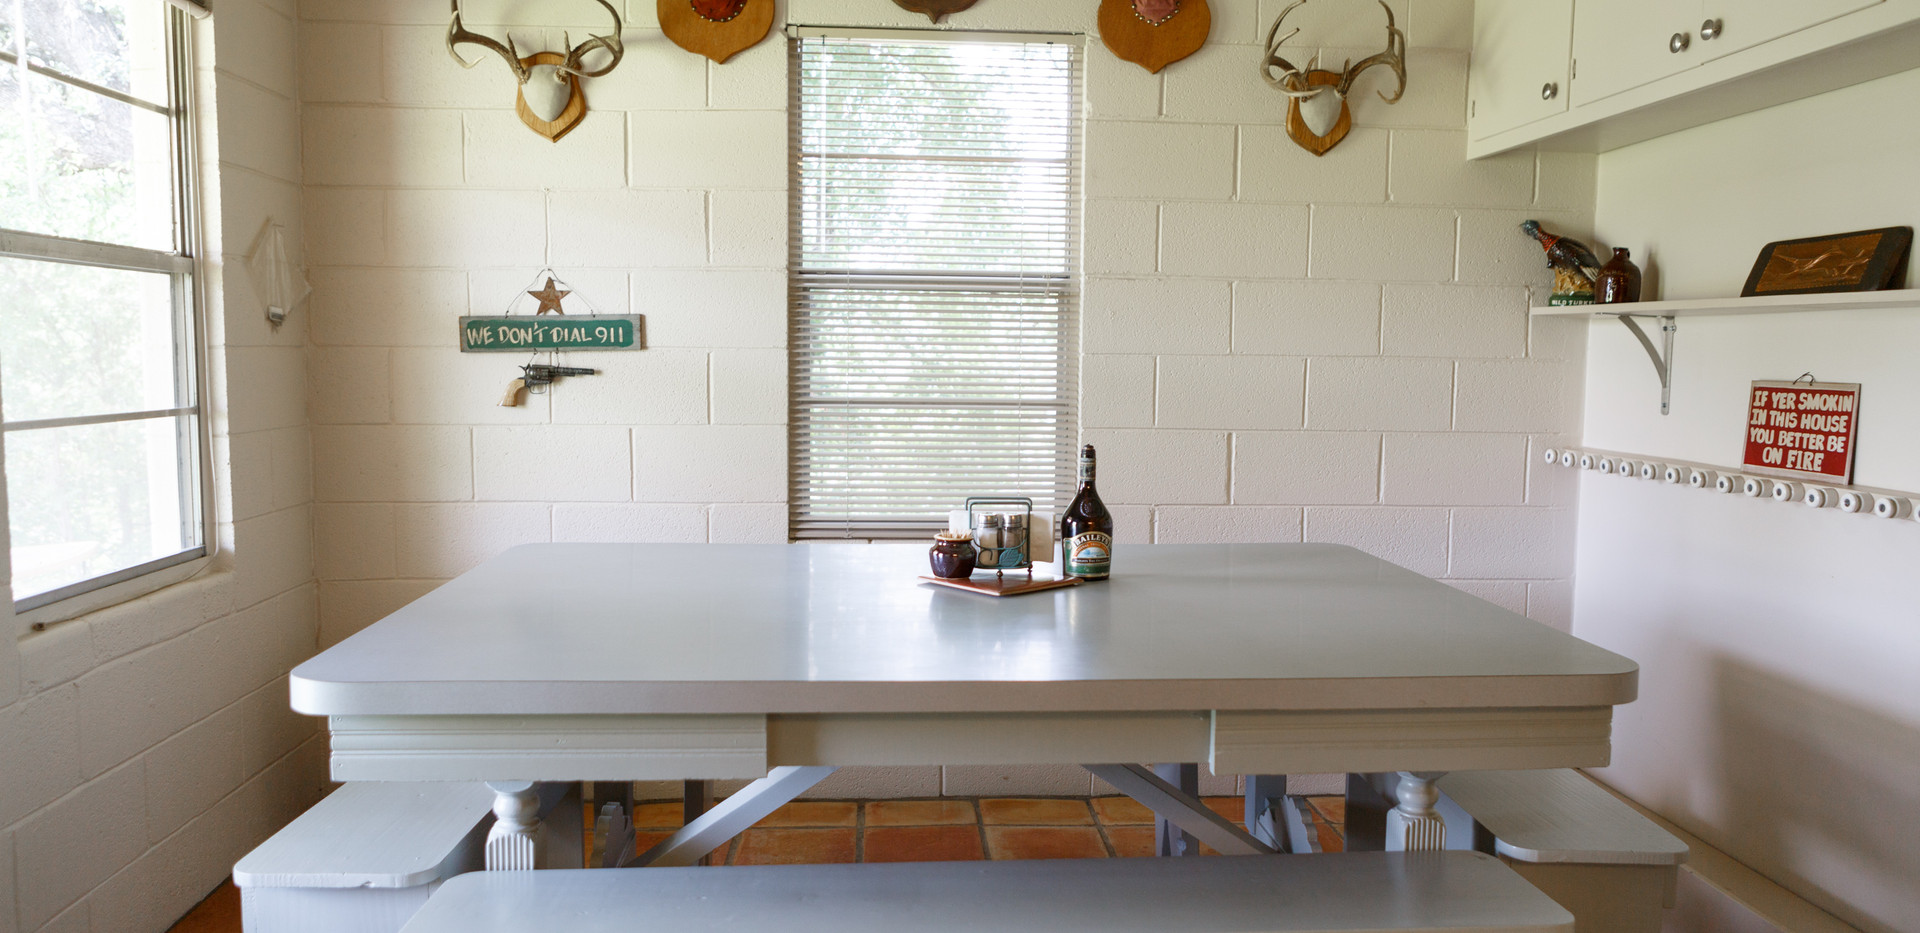 Breakfast table in fully stocked kitchen at Pecan Creek lodge for Century Ranch hunters in Llano, Texas